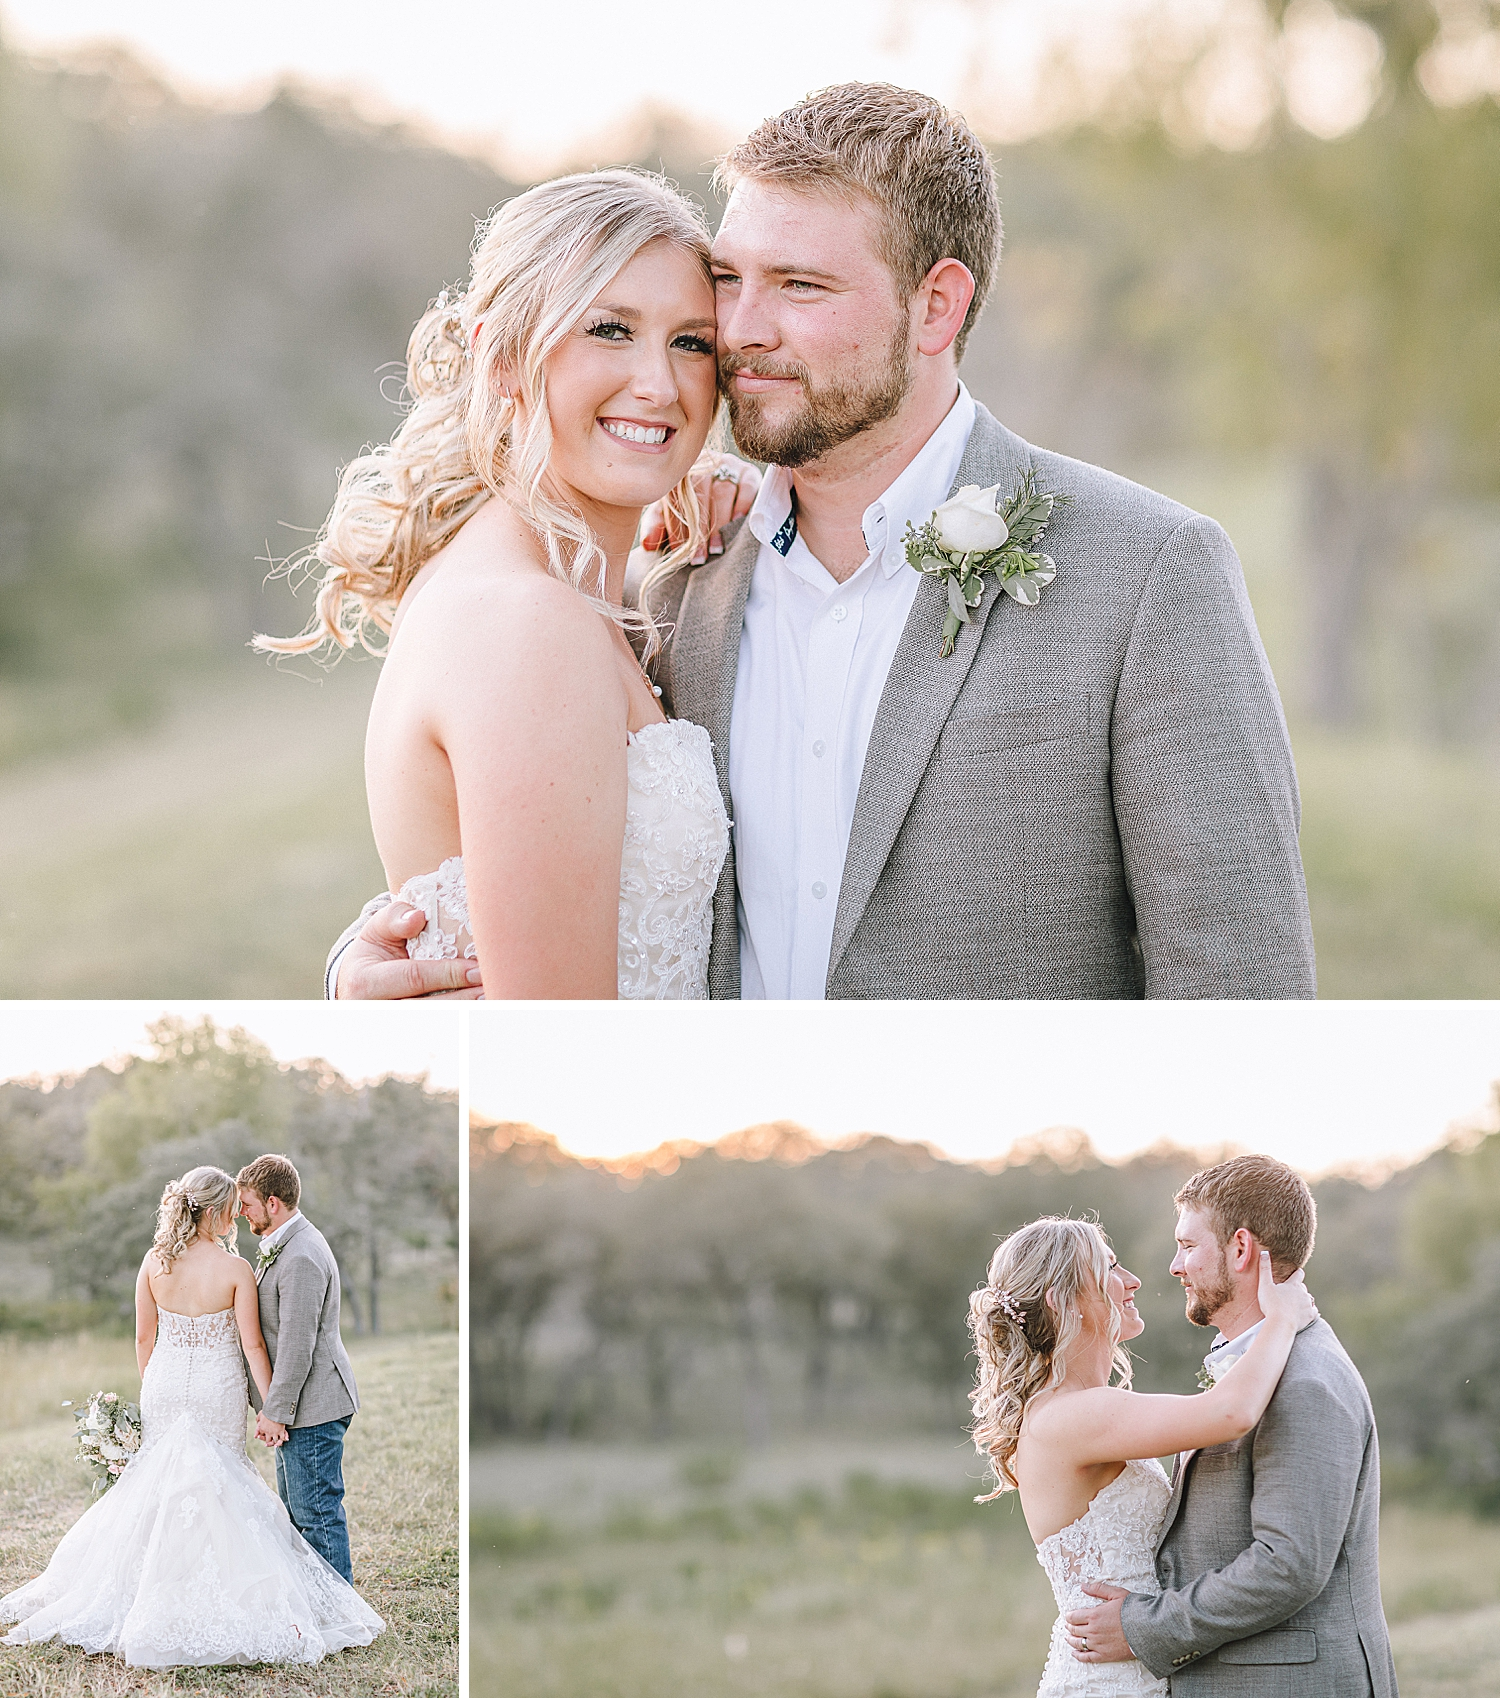 Rackler-Ranch-LaVernia-Texas-Wedding-Carly-Barton-Photography_0107.jpg